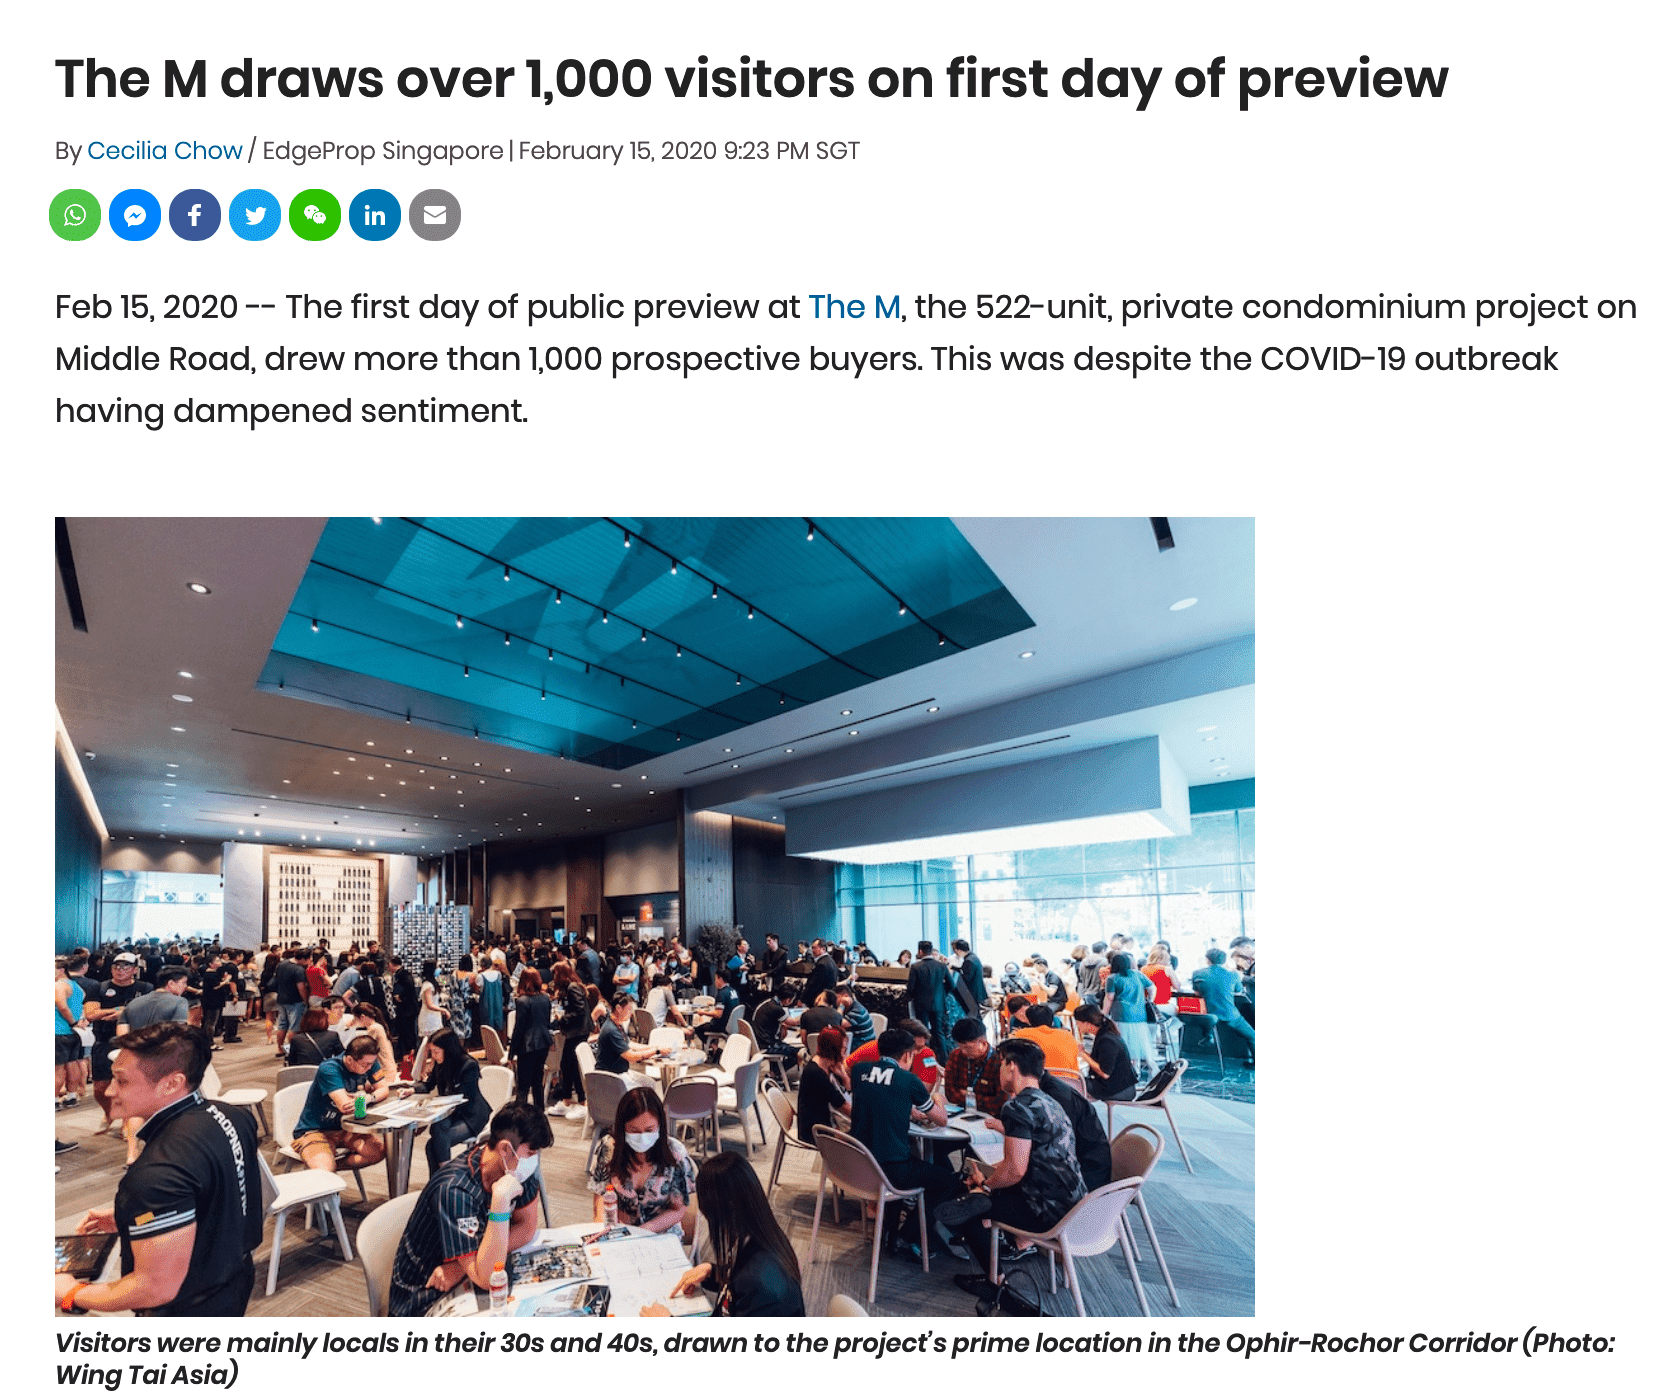 The-M-draws-over-1000-visitors-on-first-day-of-preview